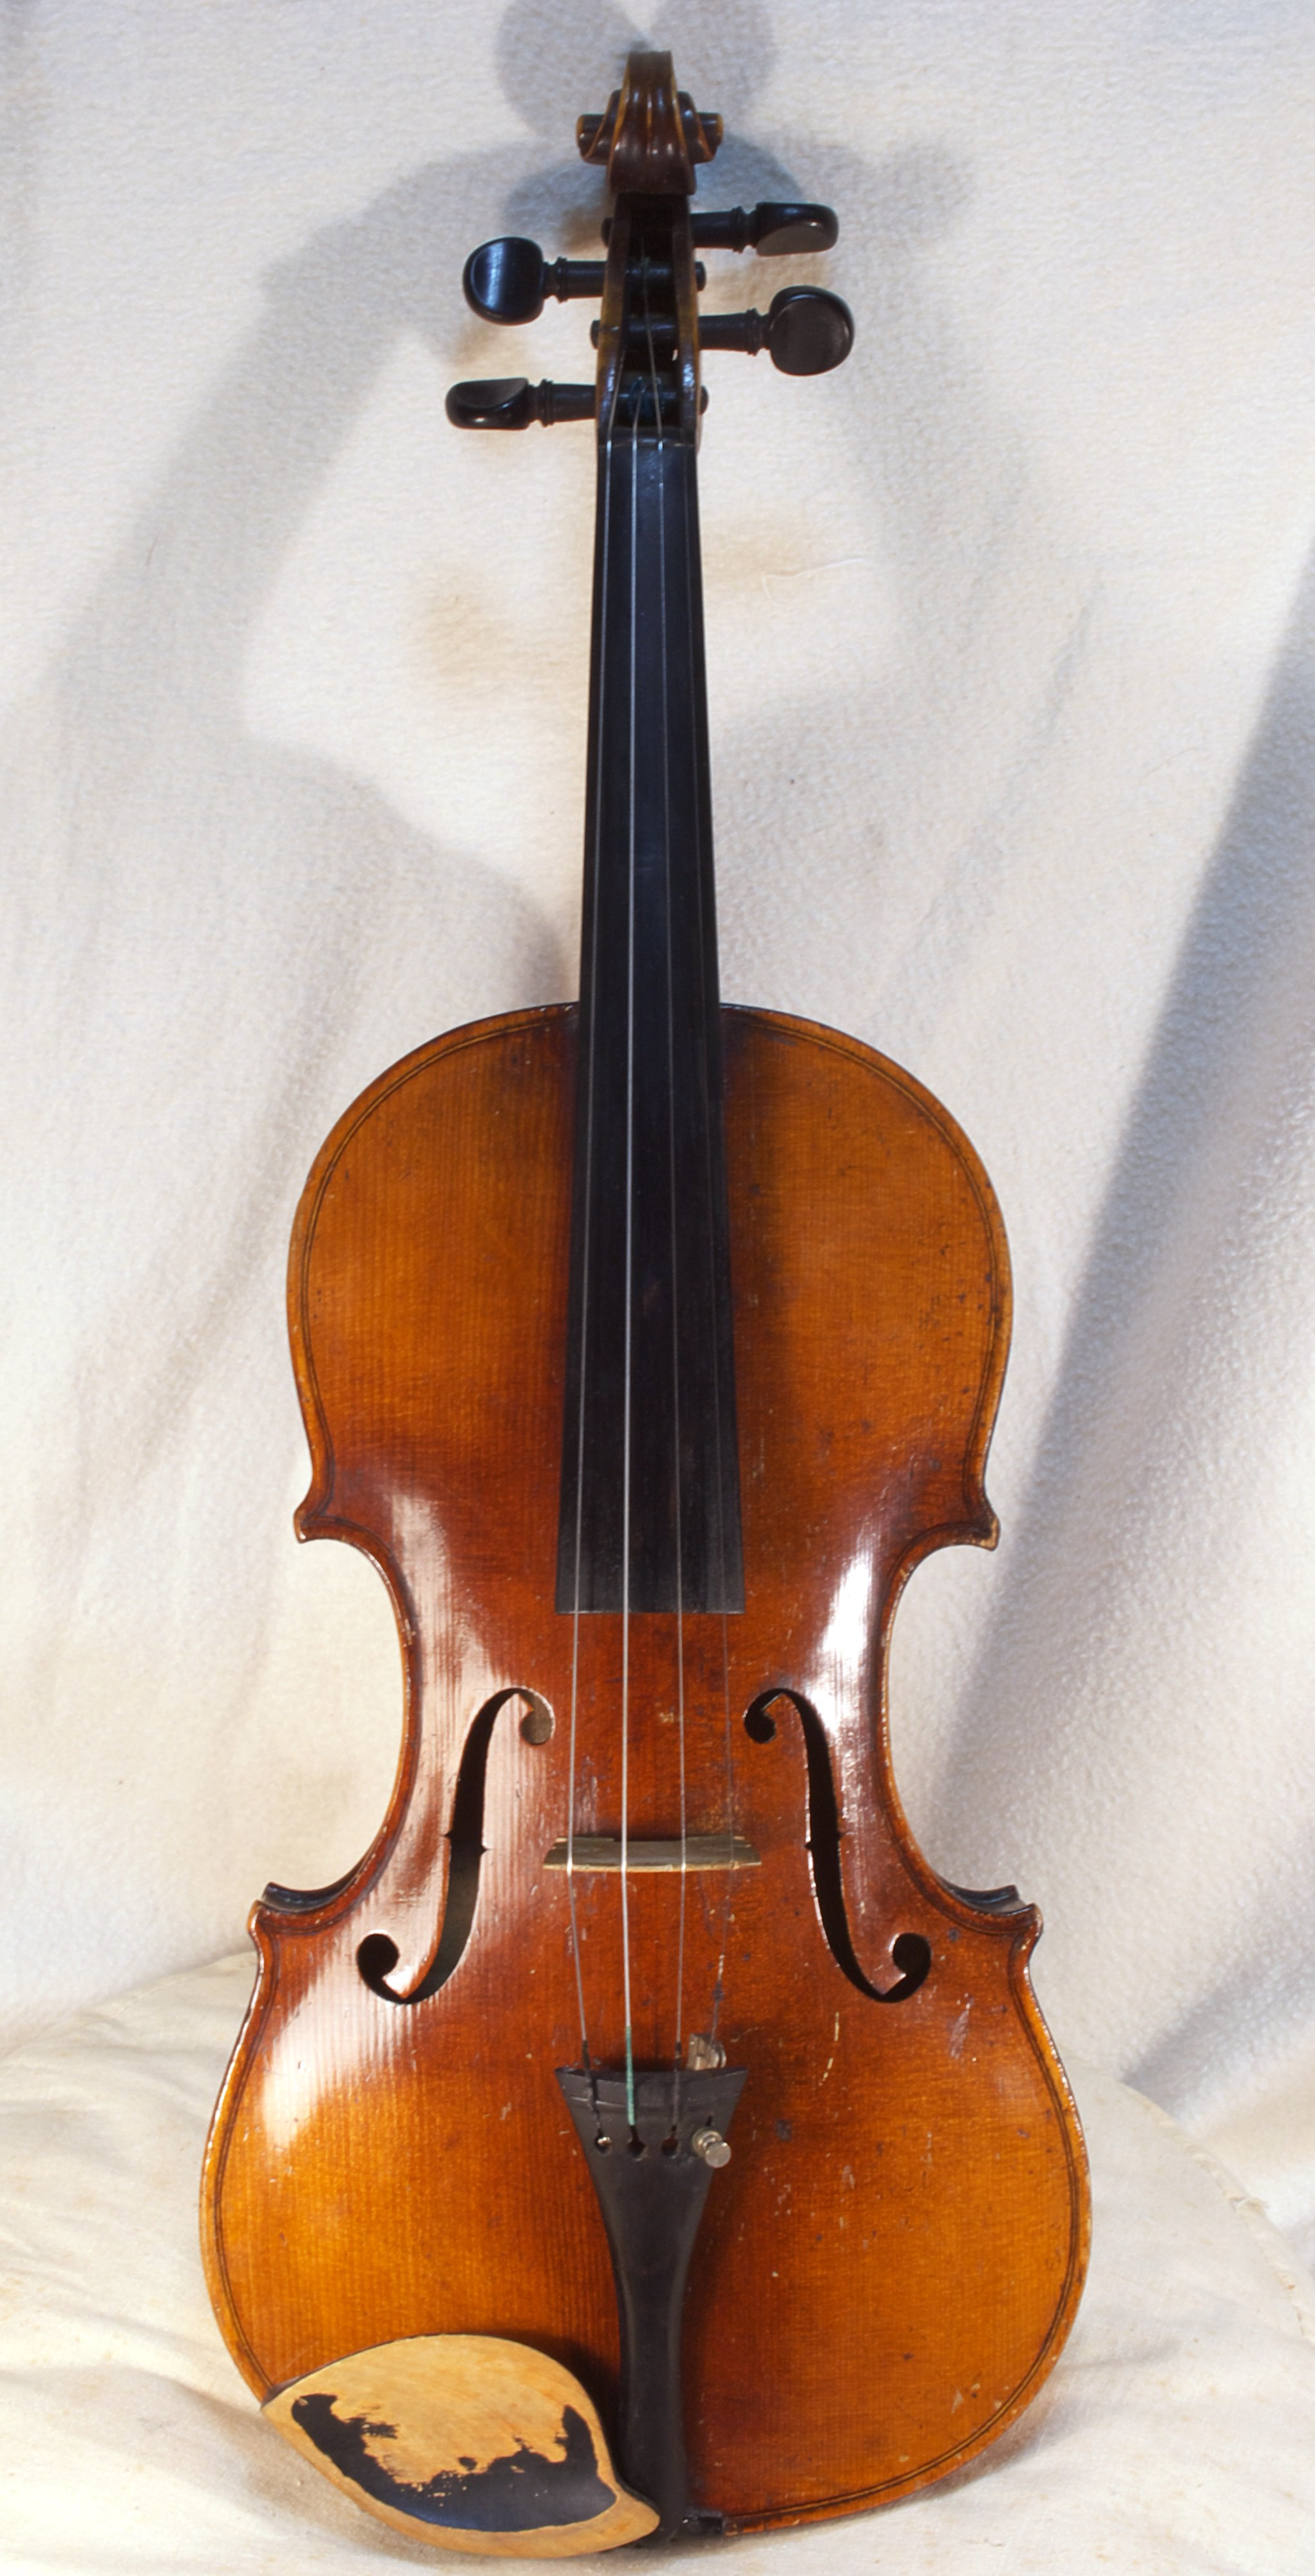 Violin by MATANAO (Wikimedia Commons)